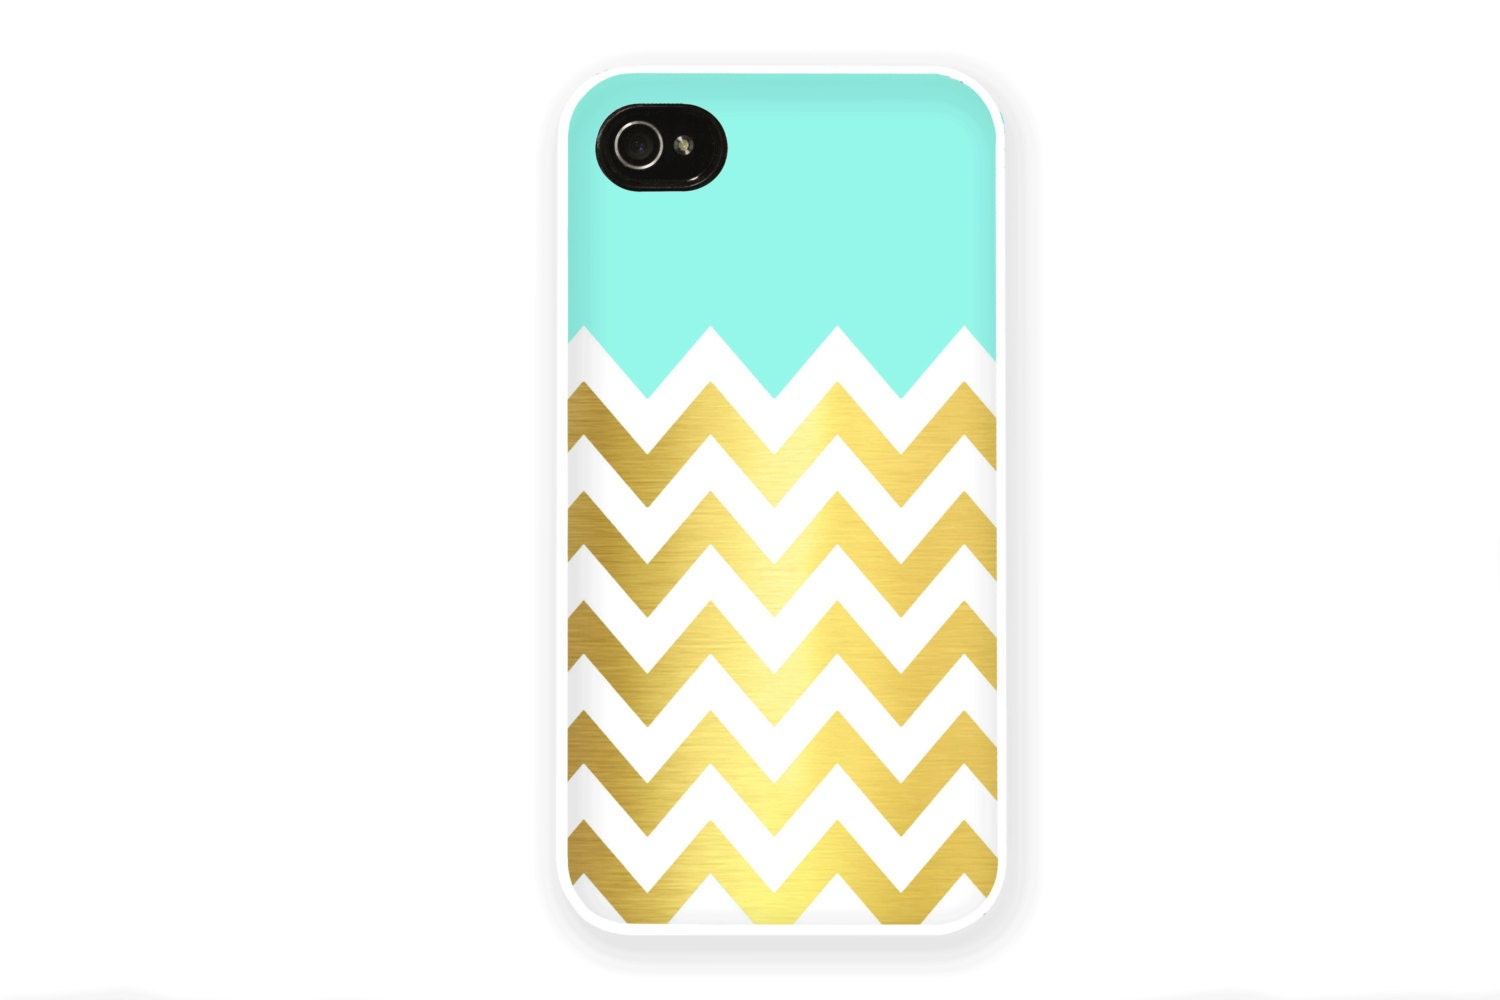 Mint and Gold Chevron iPhone Case / Mint Green and Faux Gold iPhone 4 4S 5 Case iphone 4 Case iPhone 5 Case Silicone Hard Plastic - afterimages